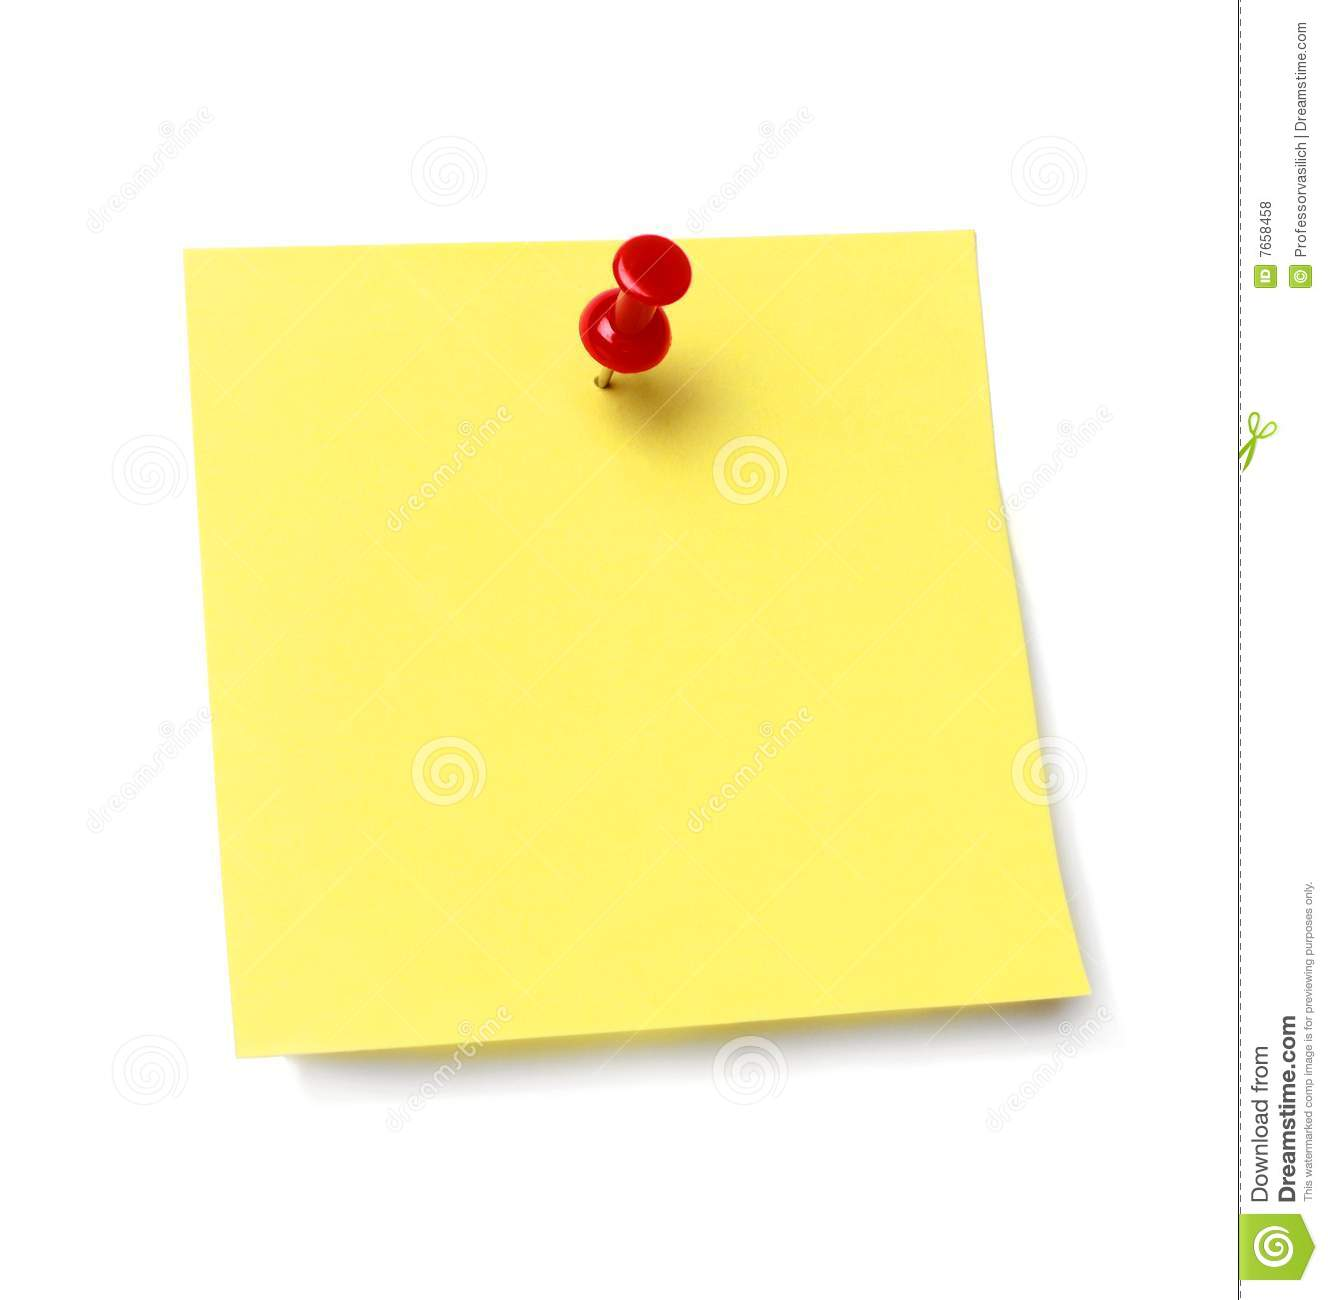 House Blogs Sticky Note Royalty Free Stock Photos Image 7658458